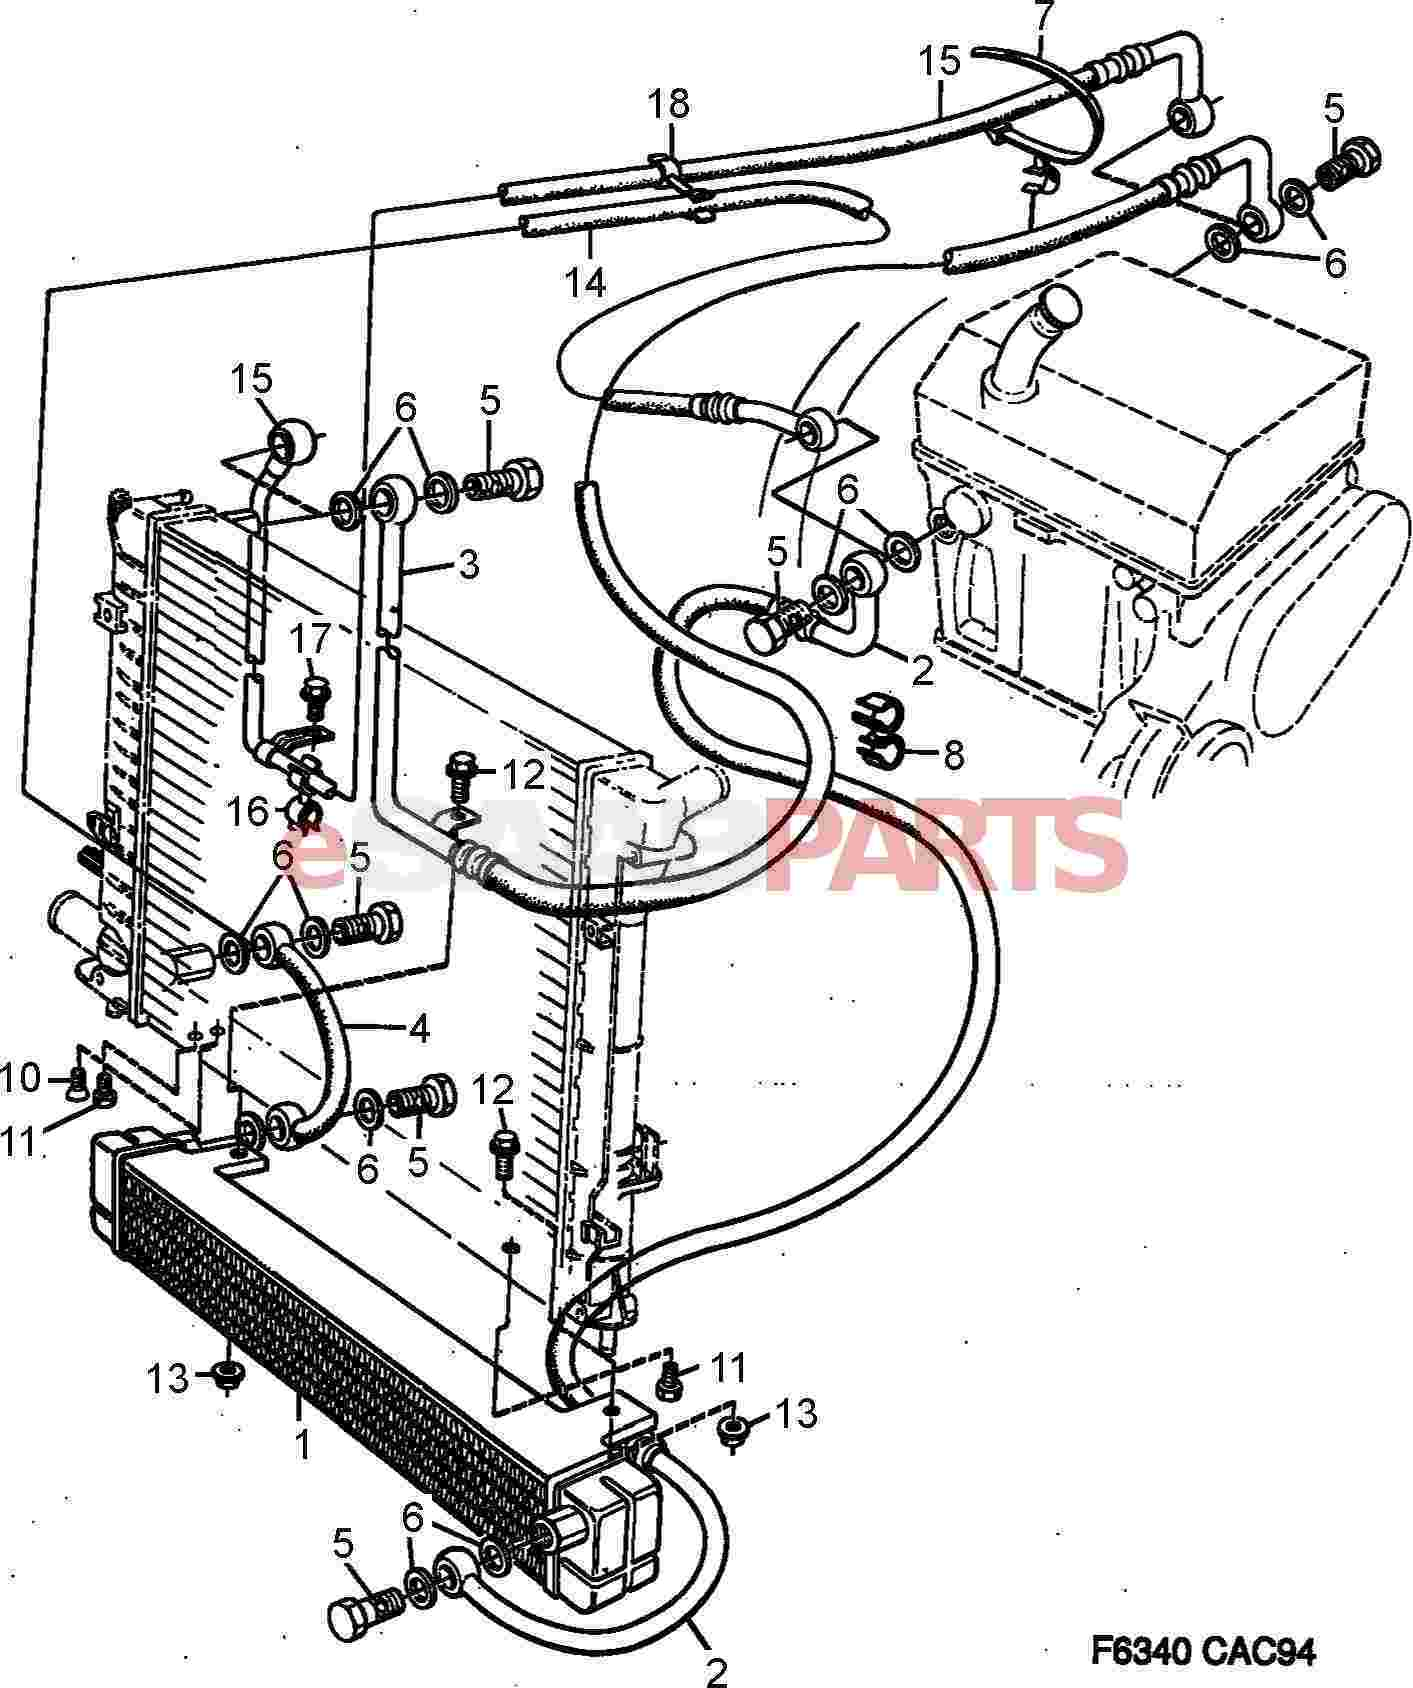 Saab 9000 Cse Parts Diagram. Saab. Auto Wiring Diagram